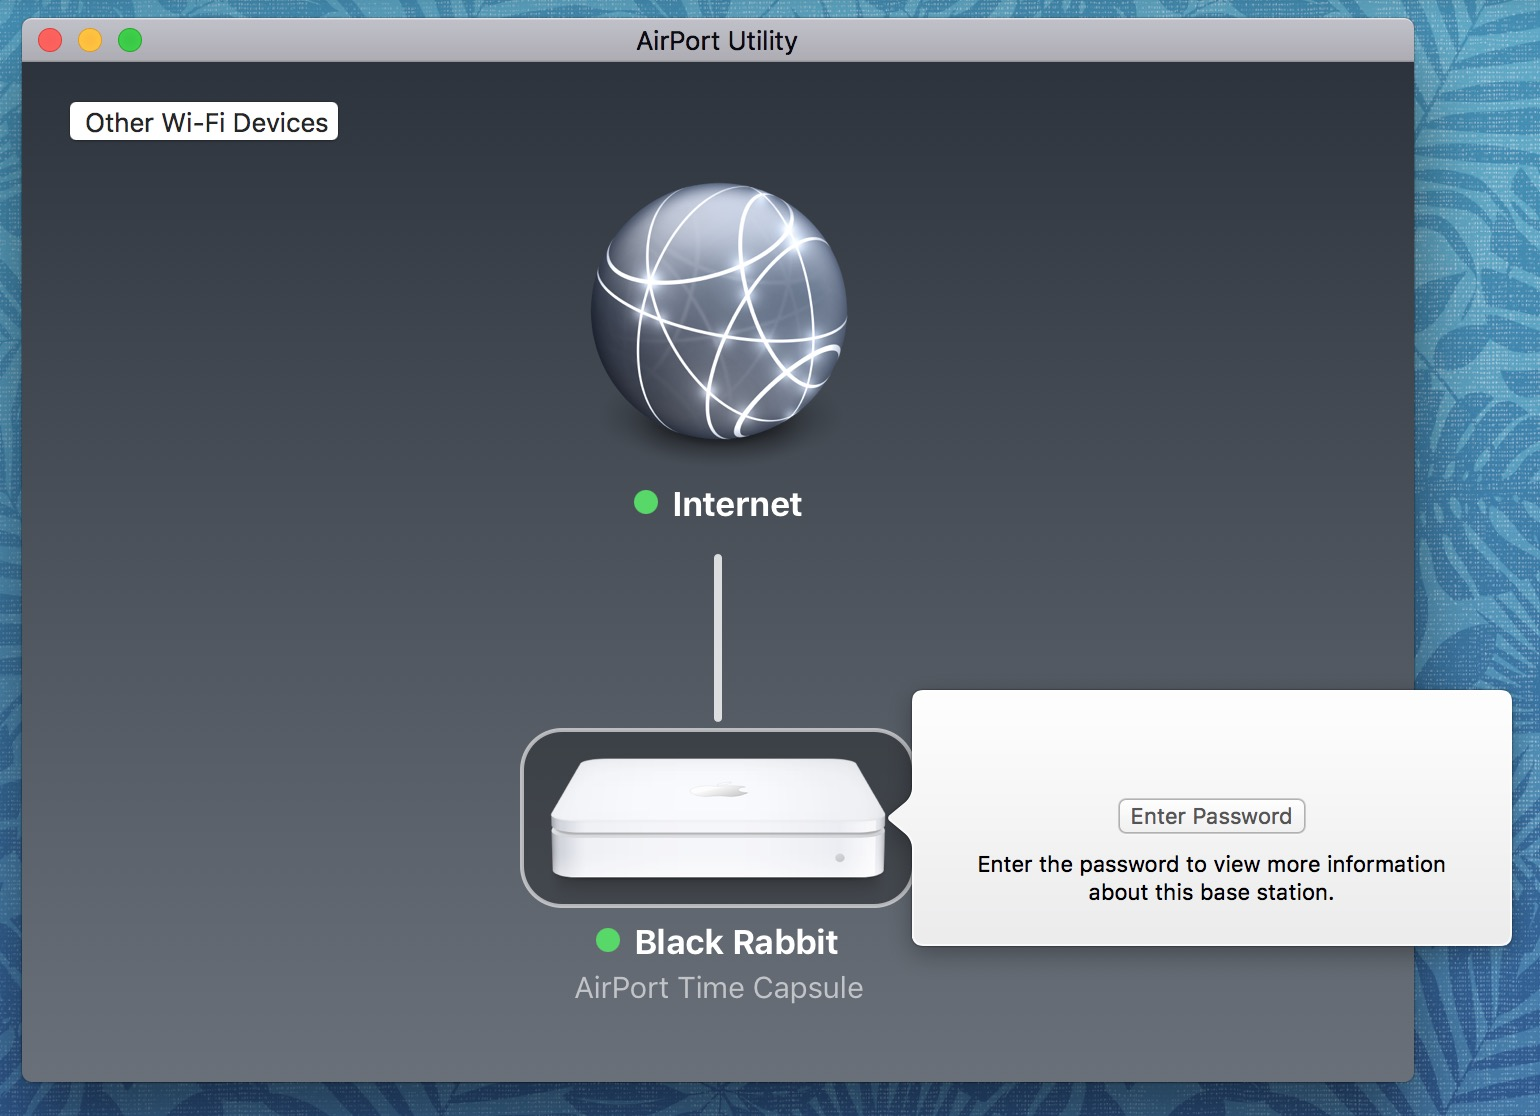 """""""Enter Password"""" Prompt in AirPort Utility on the Mac"""